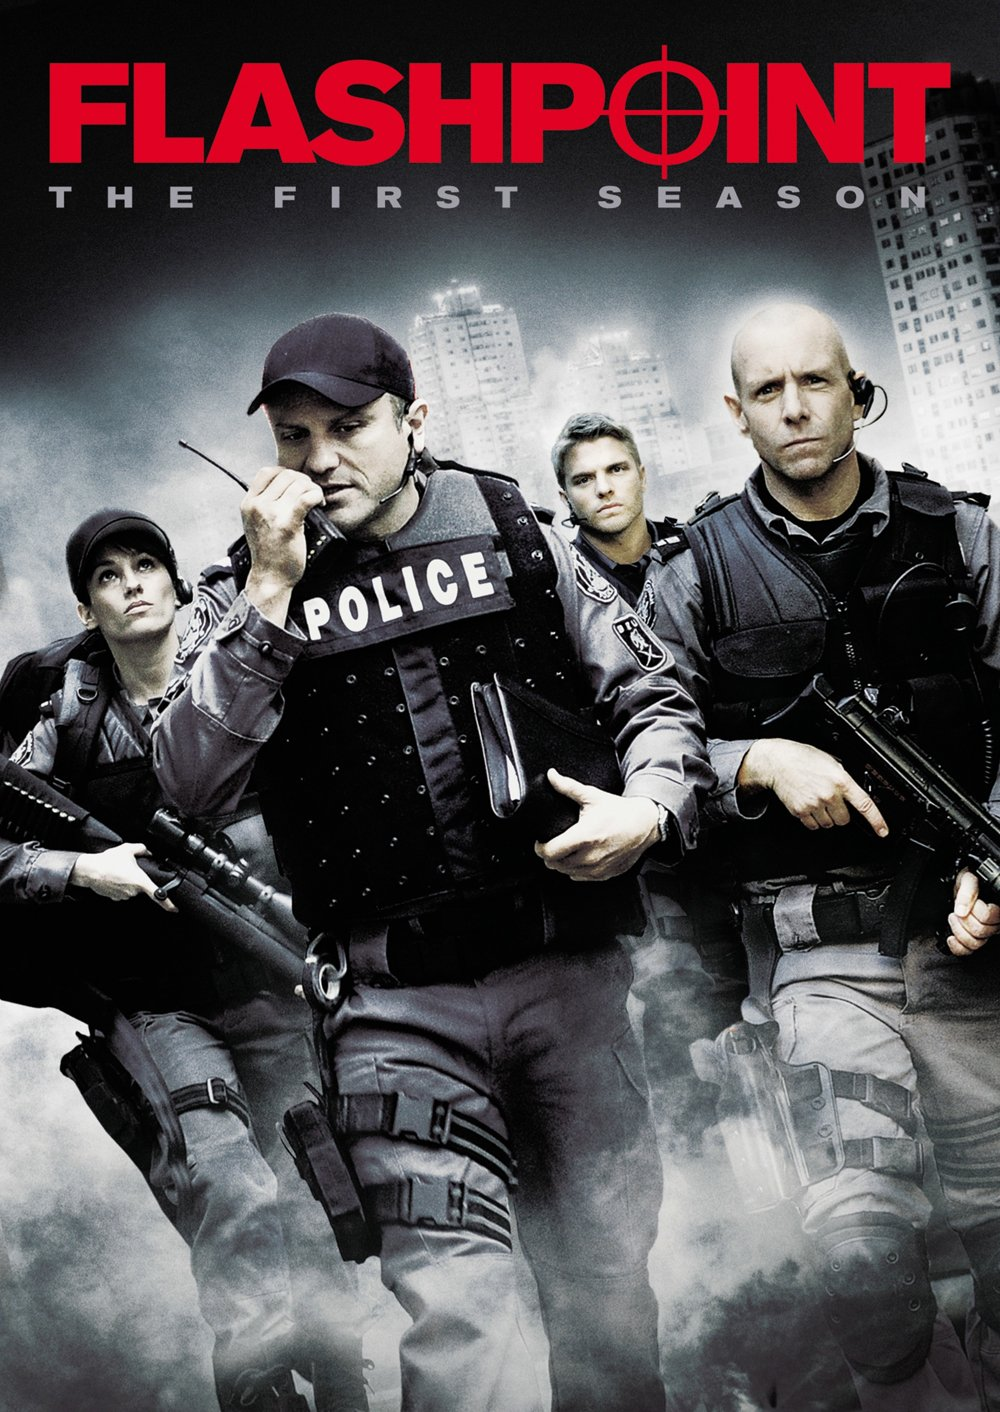 Amazon.com: Flashpoint: Season 1: Enrico Colantoni, Amy Jo Johnson ...